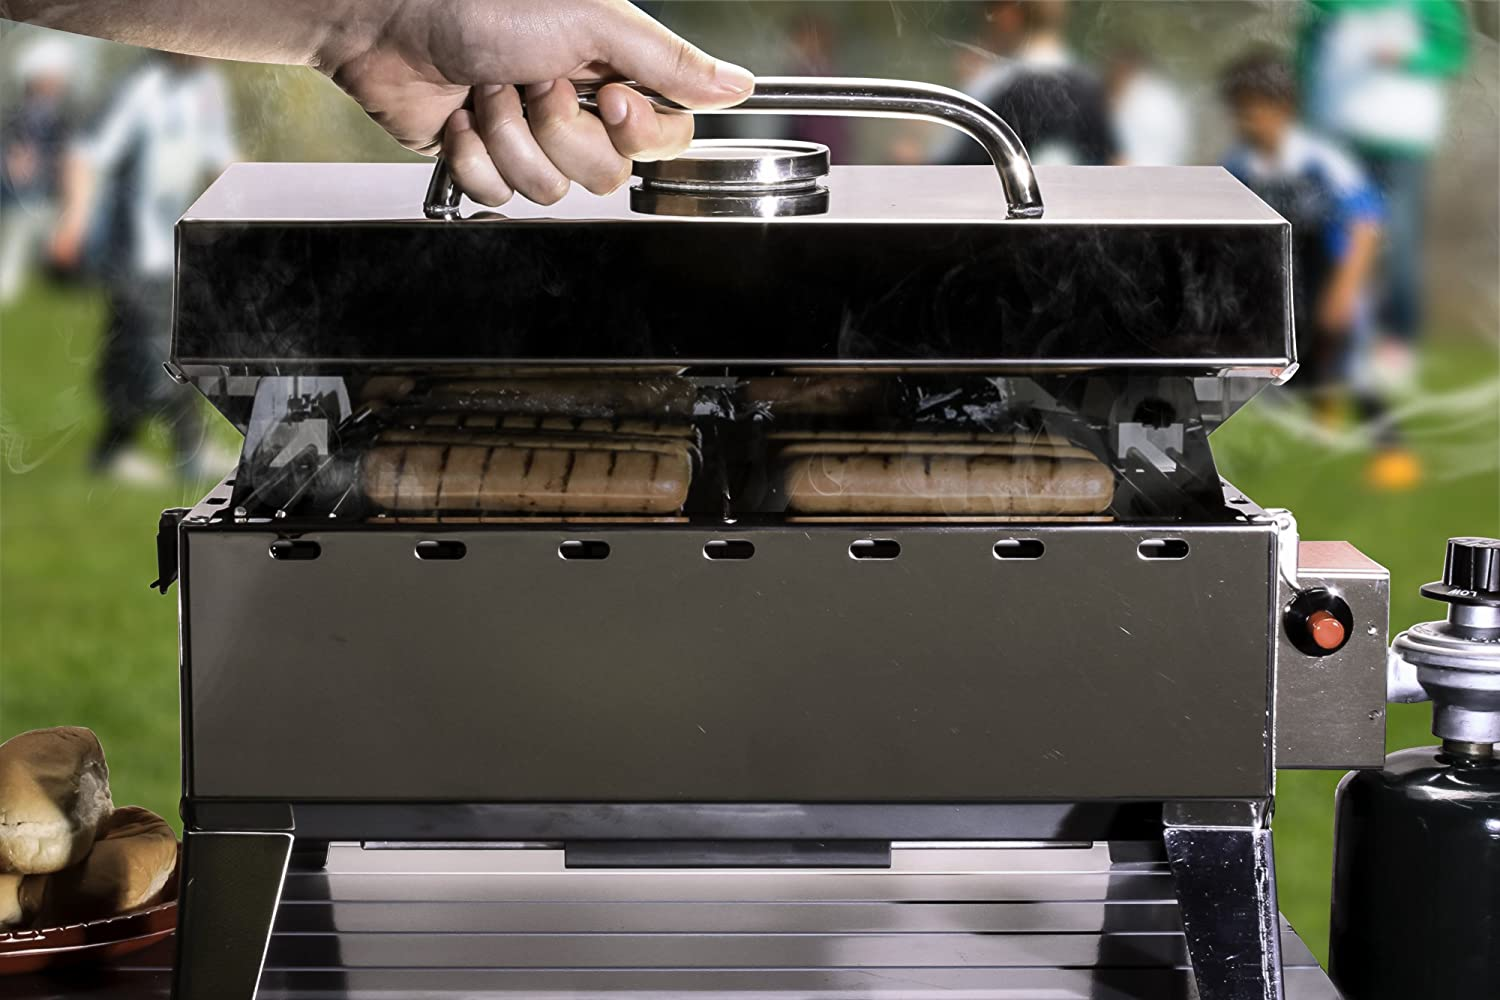 Camco 58145 Stainless Steel Portable Propane Gas Grill With Storage Bag Contact Grills